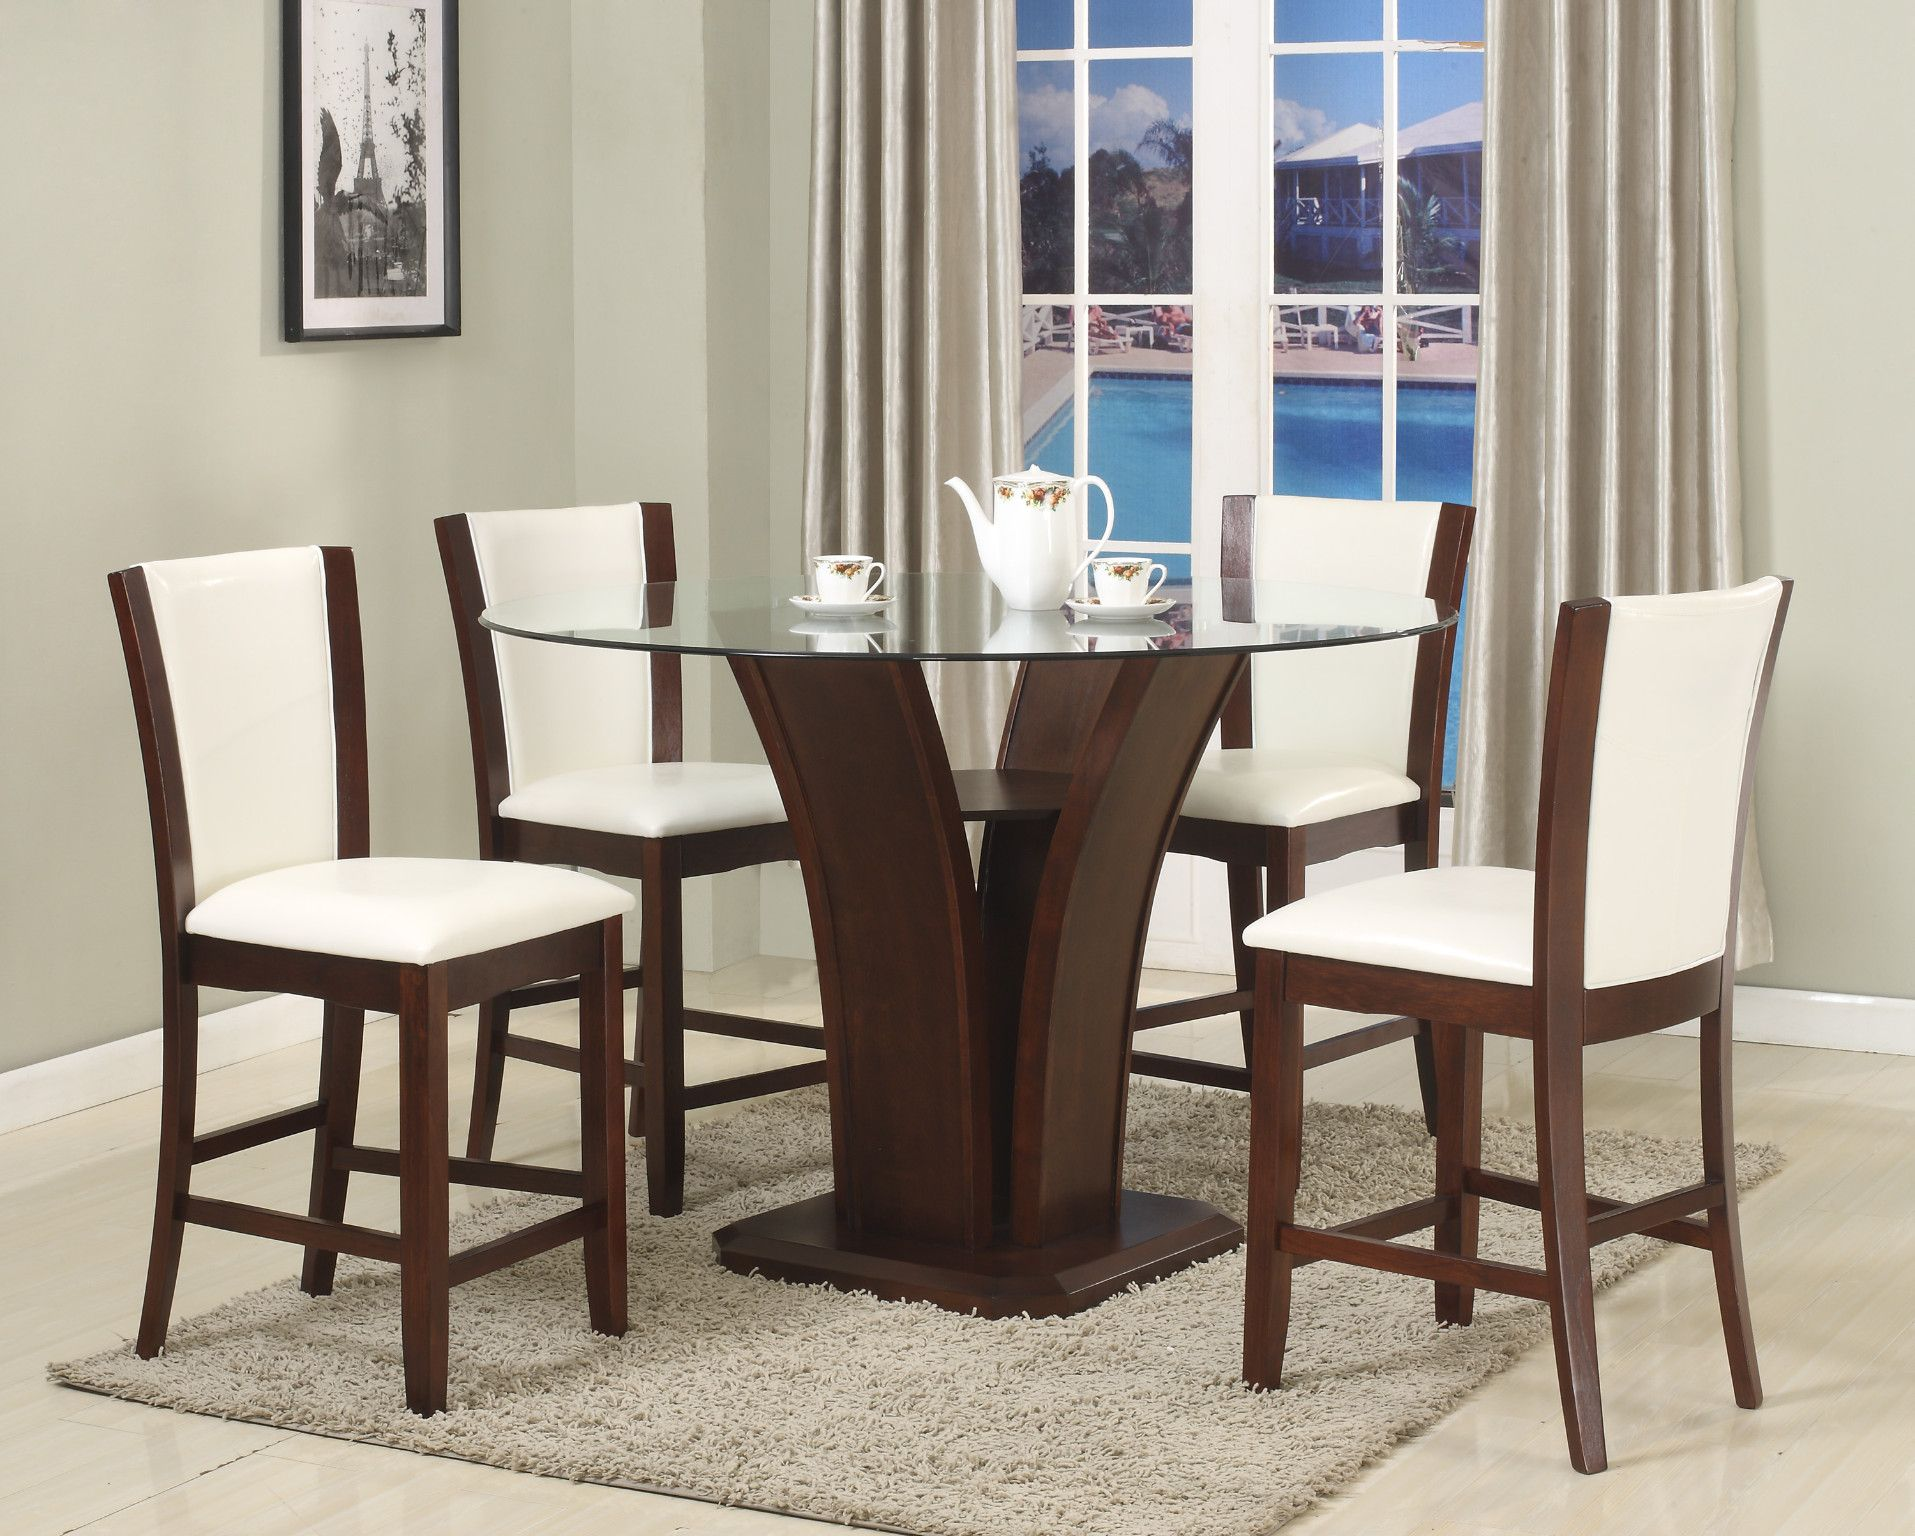 Camelia White 5 Piece Counter Height Table And 4 Chairs 64900 30000 54 Dia